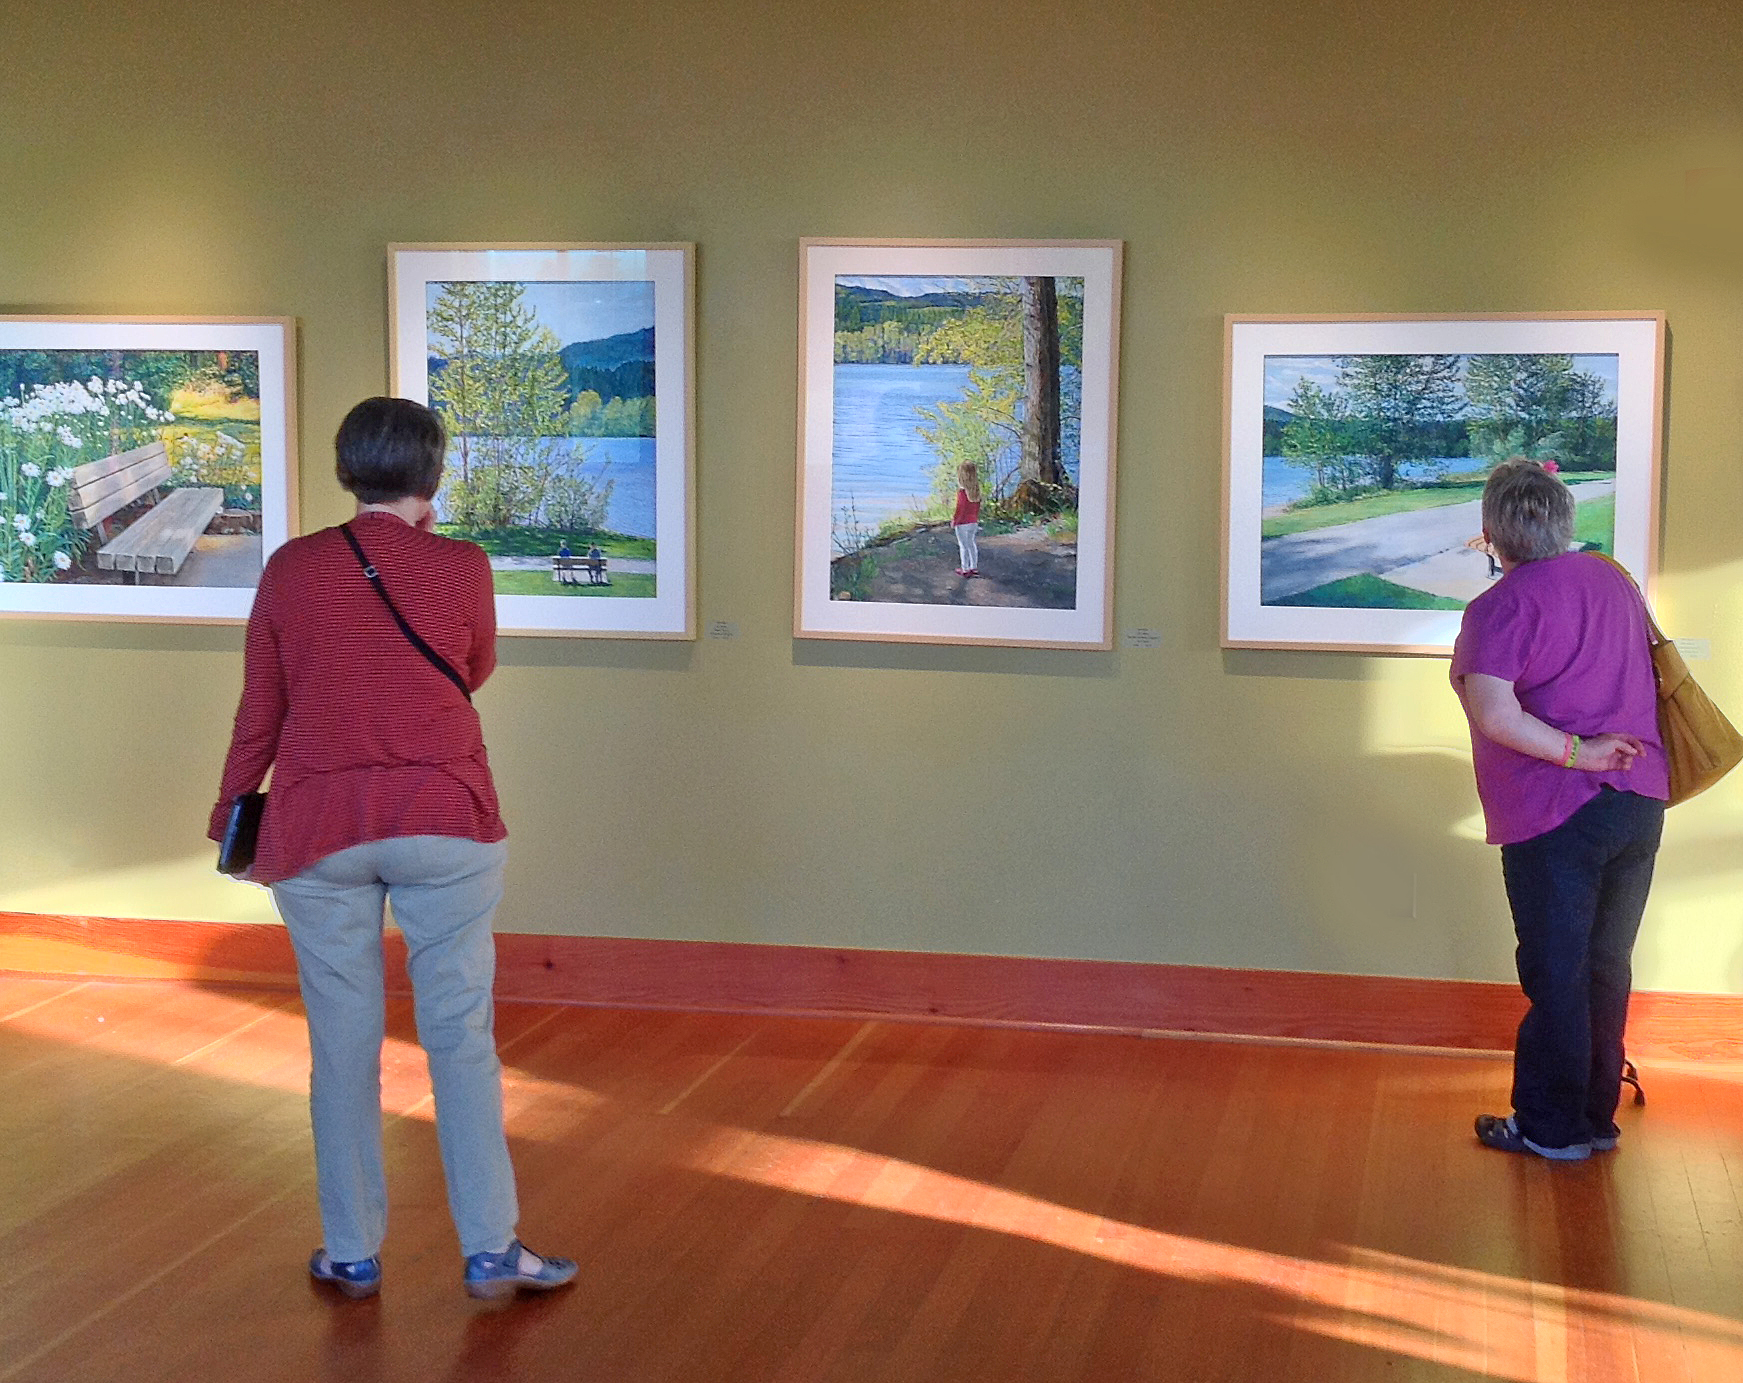 LOOKING AT PAINTINGS.  AN ART EXHIBIT AT THE JANSEN ART CENTER IN LYNDEN, WA